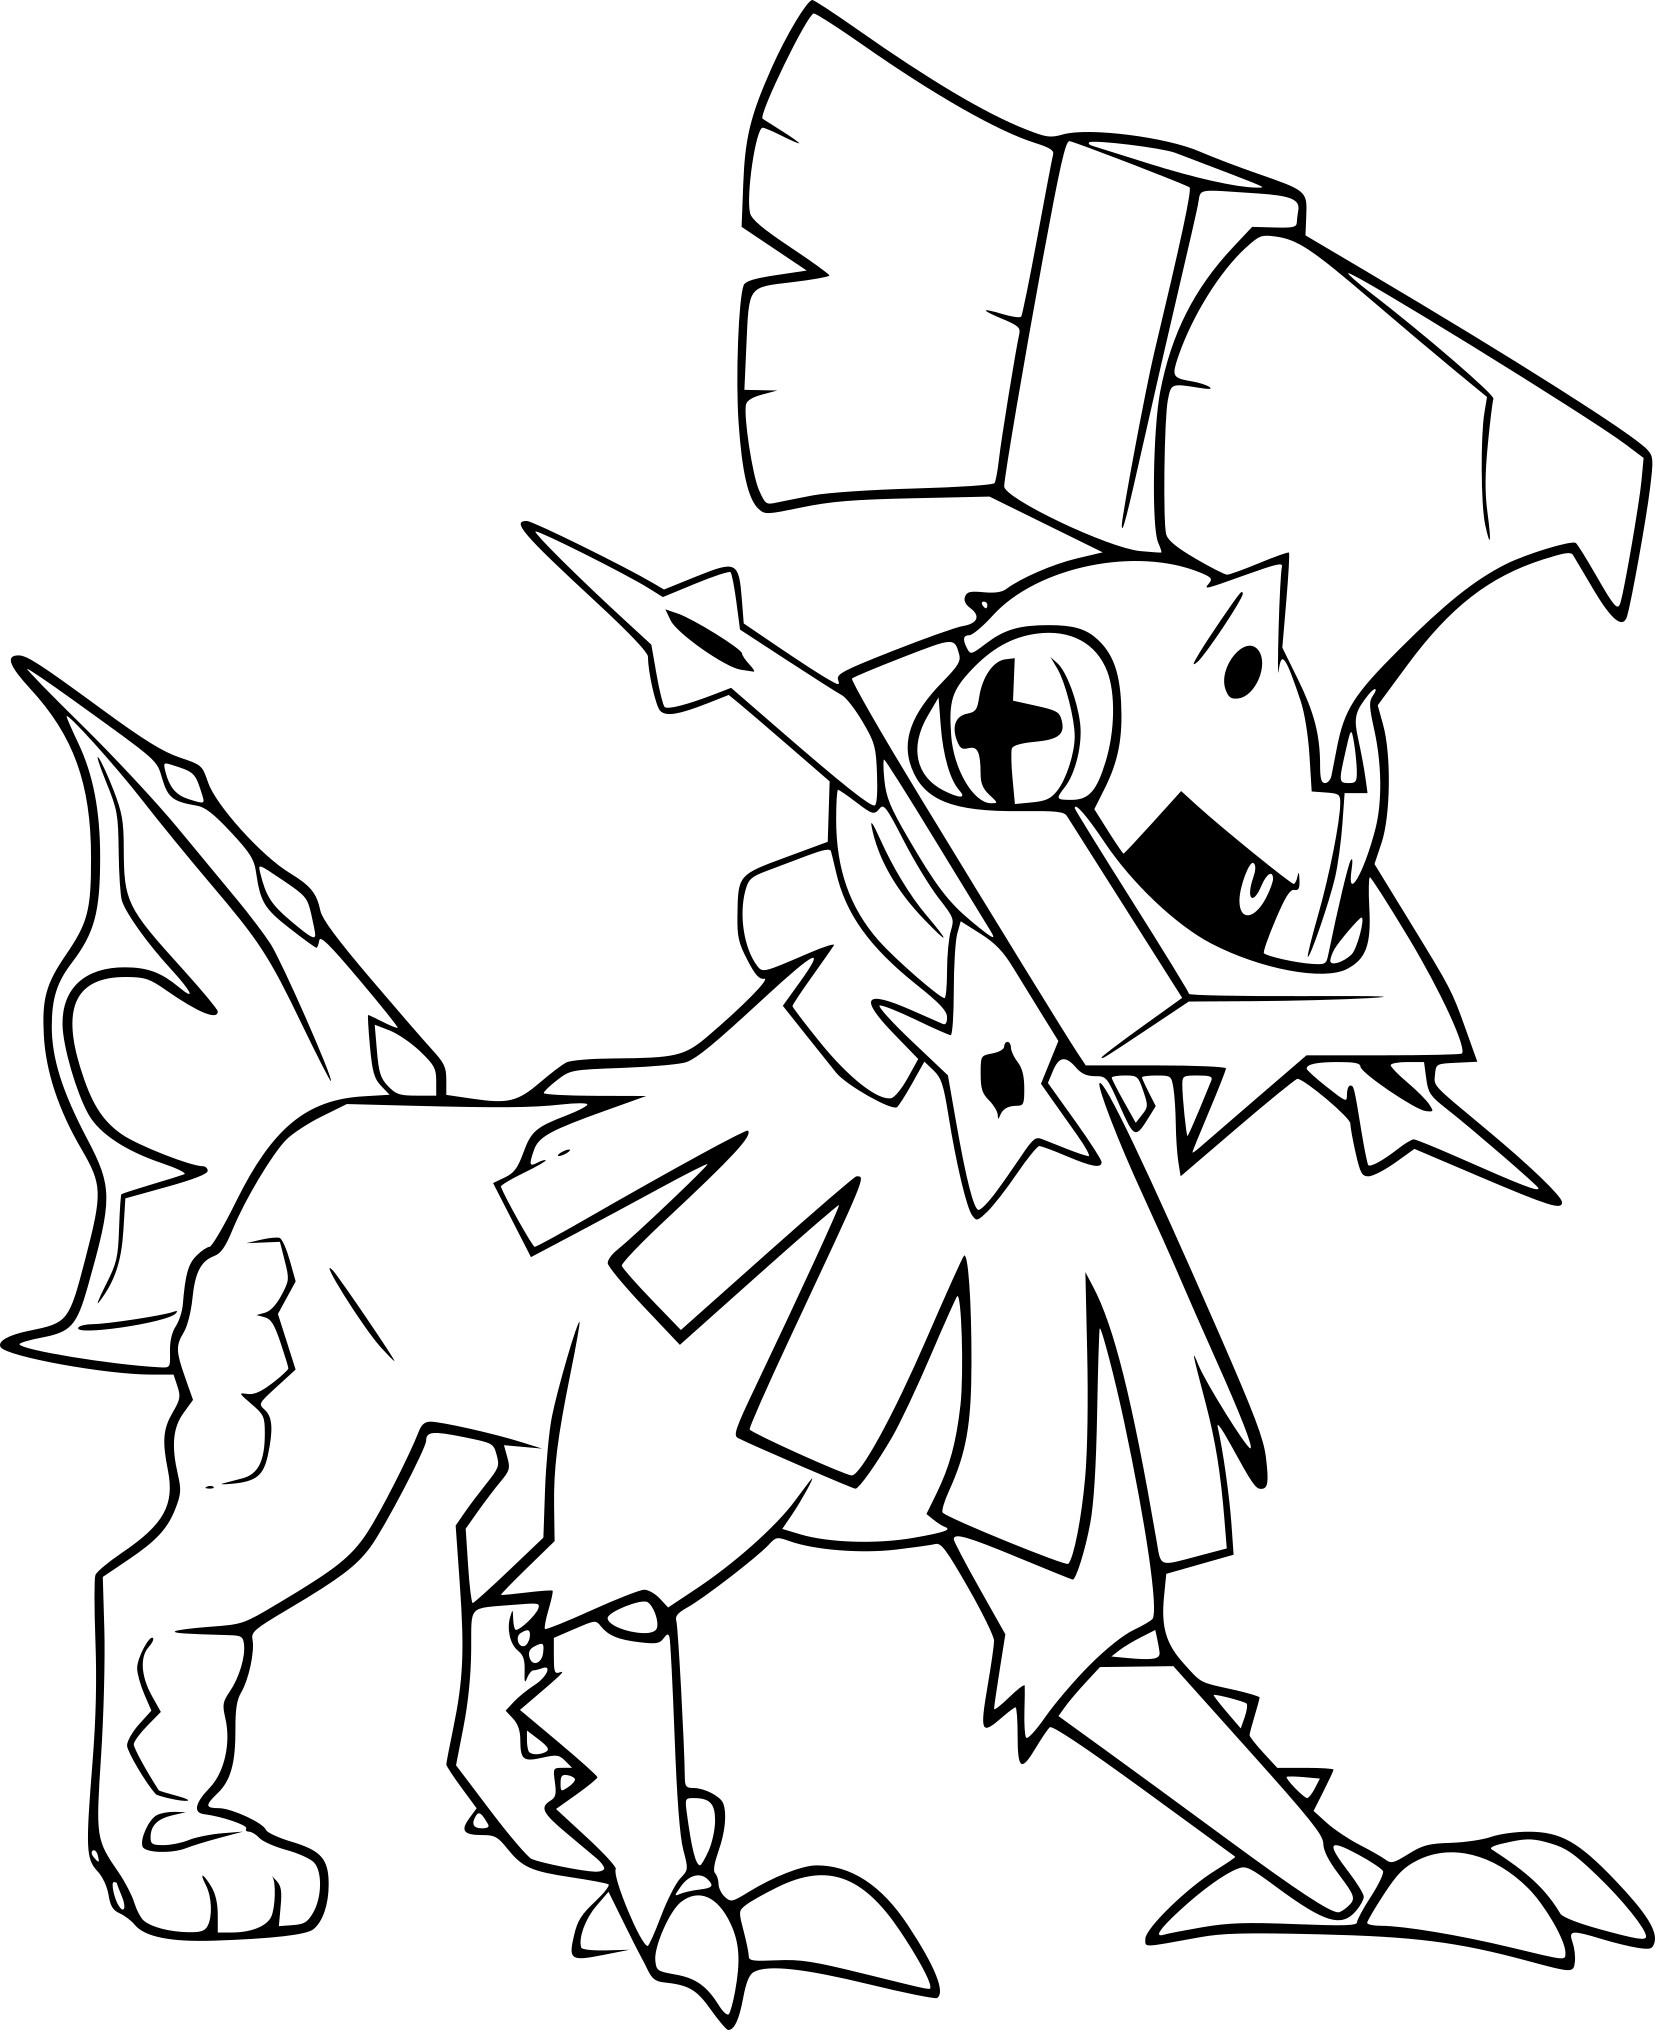 Coloriage Aquali Pokemon à Imprimer